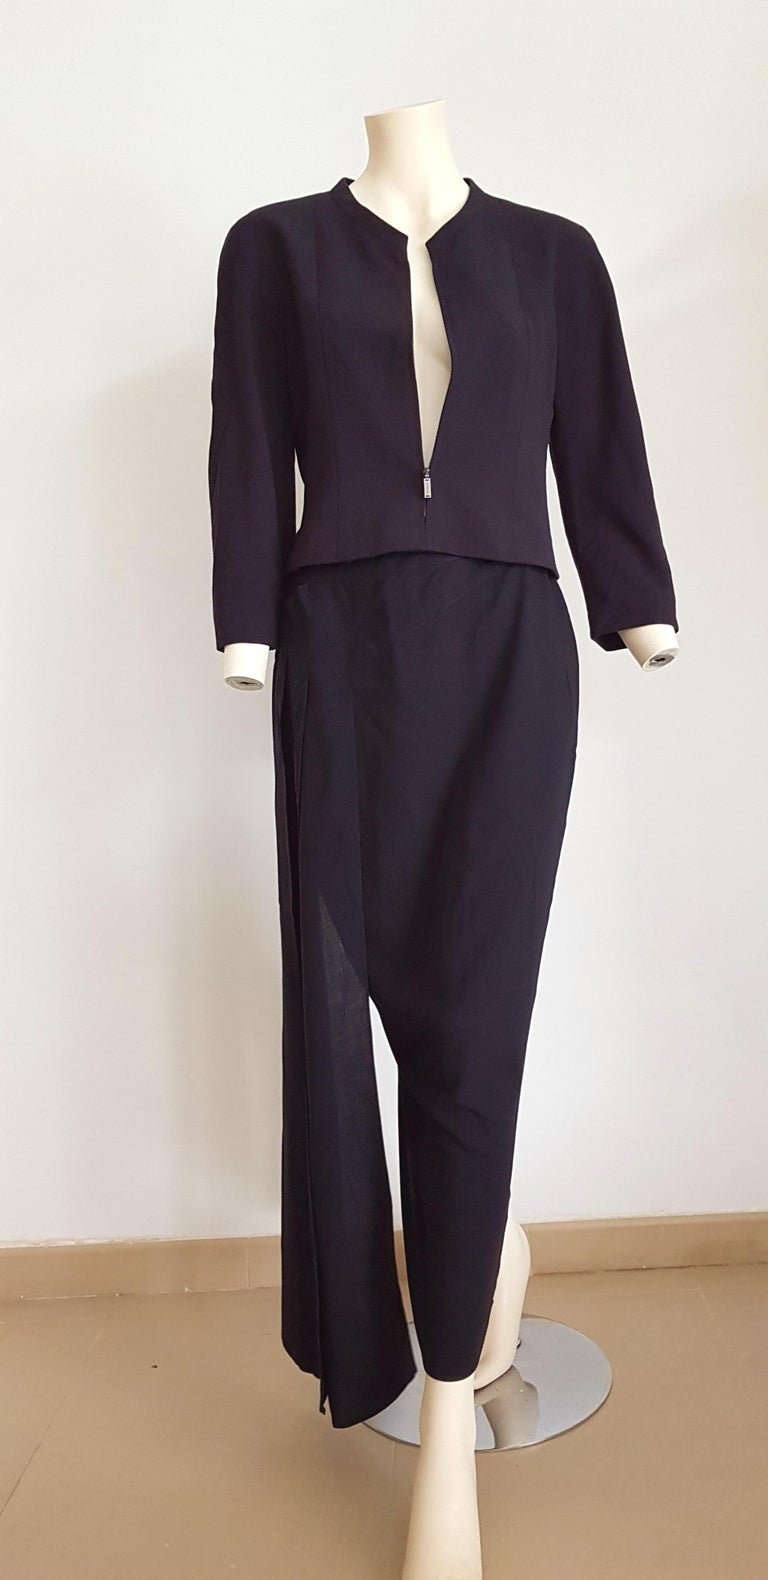 CHANEL dark blue, front zip short jacket, skirt with drape, wool, silk lined - Unworn   SIZE: equivalent to about Small / Medium, please review approx measurements as follows in cm.  JACKET: lenght 50, chest underarm to underarm 47, bust